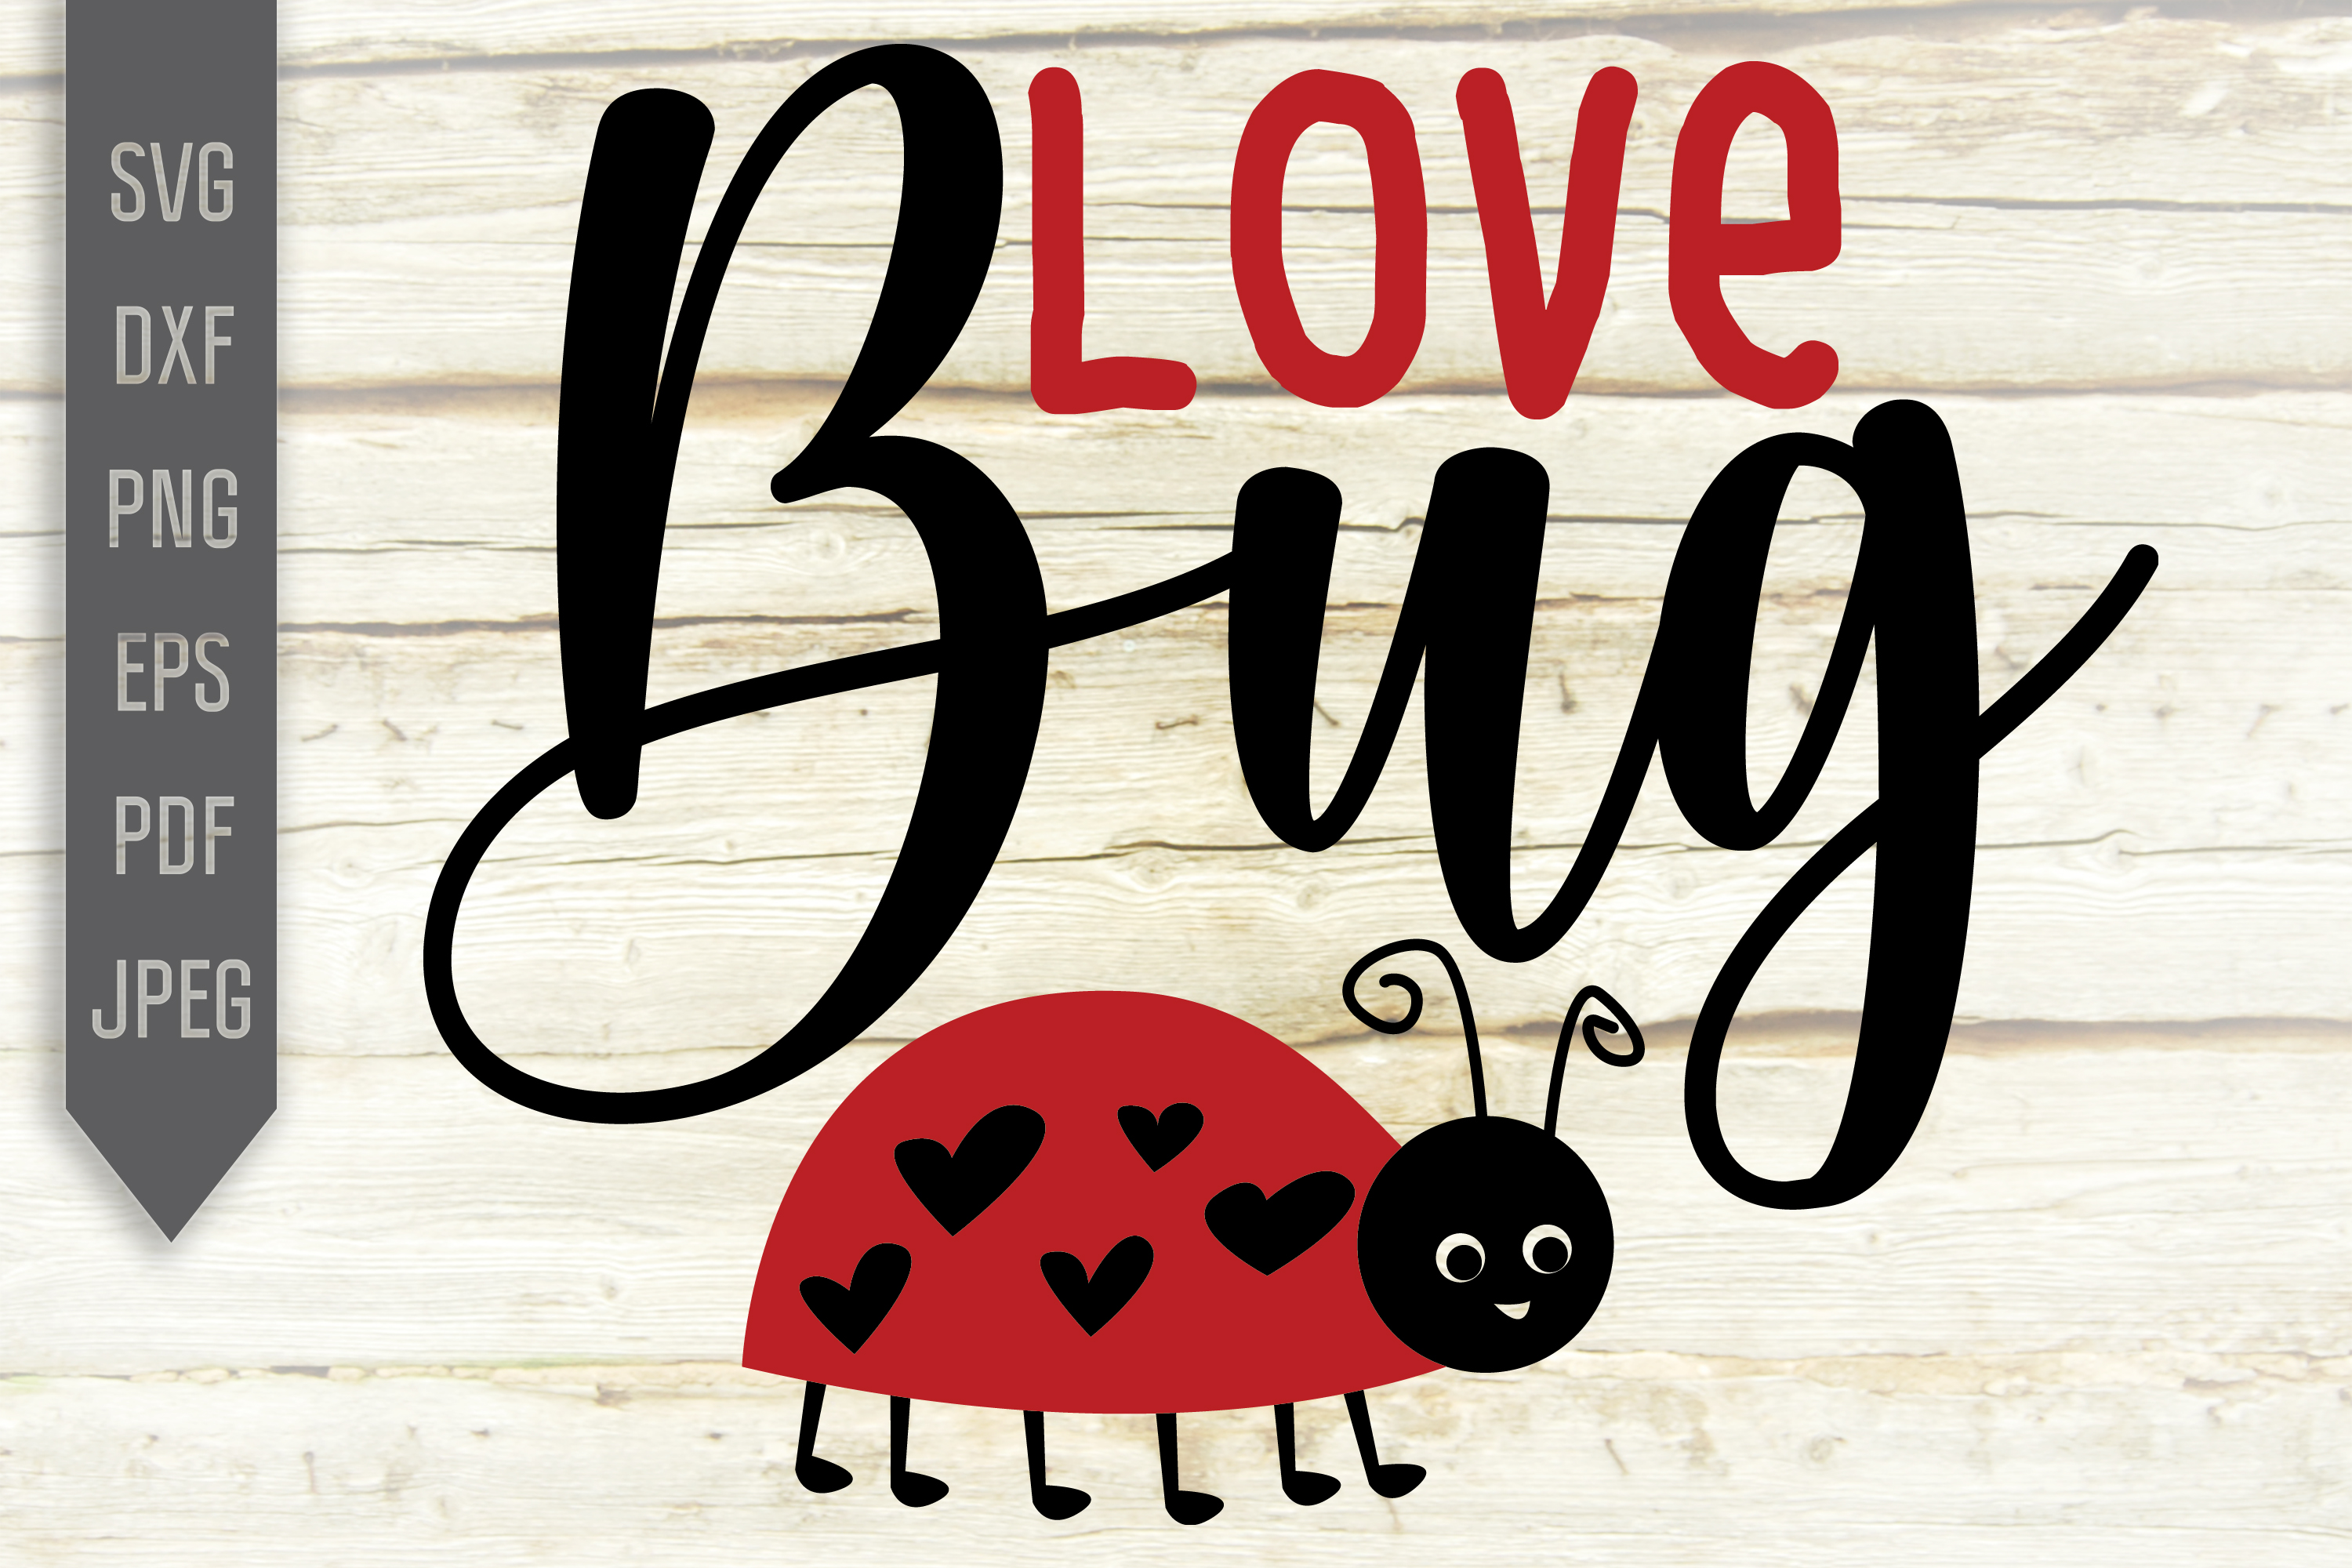 Download Free Love Bug Cute Valentine Girl Shirt Graphic By Svglaboratory for Cricut Explore, Silhouette and other cutting machines.